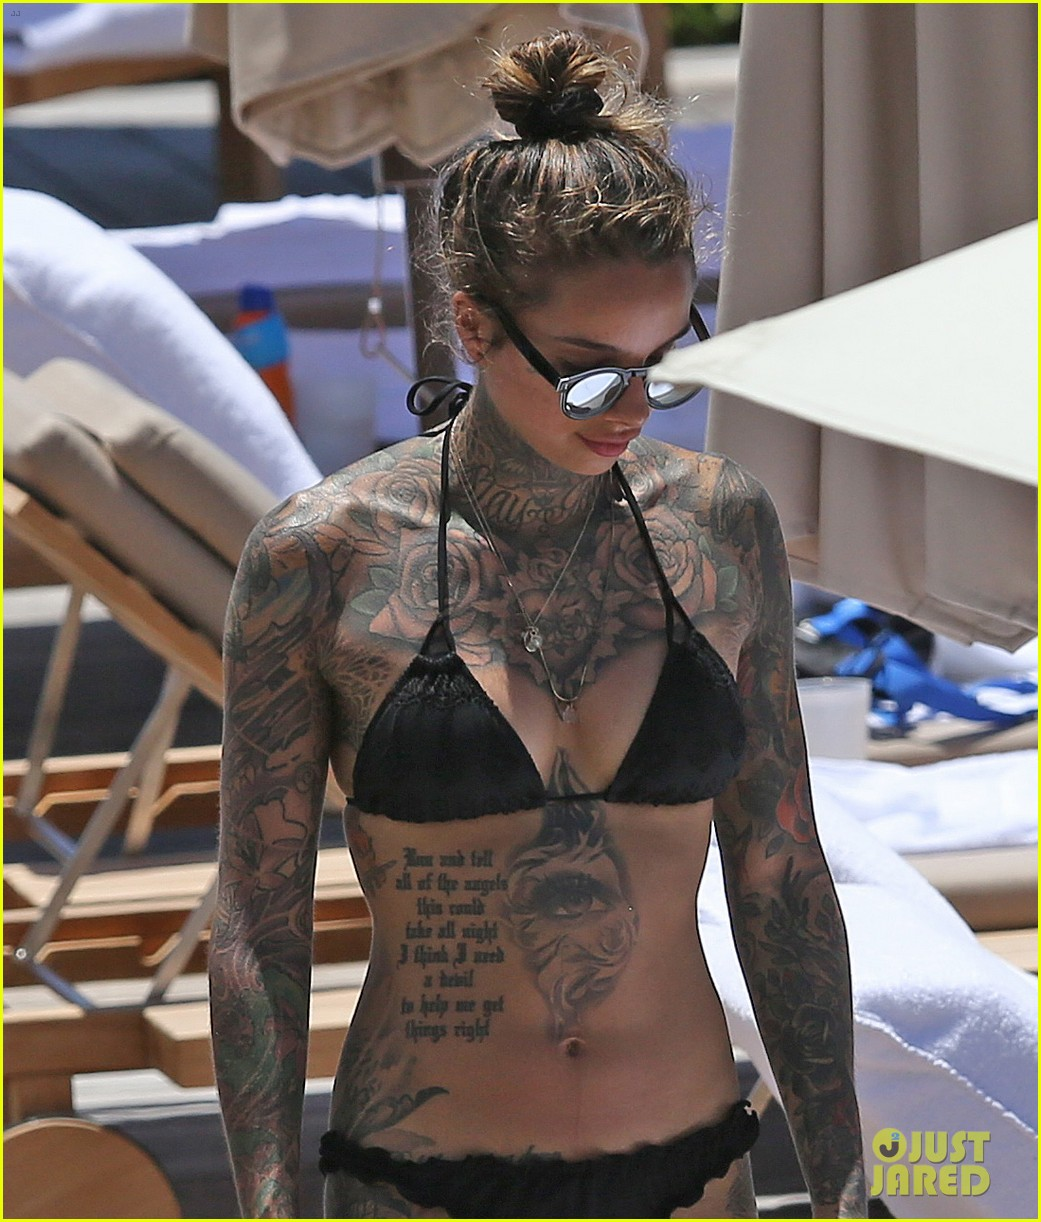 Joel Kinnaman Wife Cleo Wattenstrom Bare Hot Tattoed Bodies In Hawaii 14 on happy birthday arnold schwarzenegger